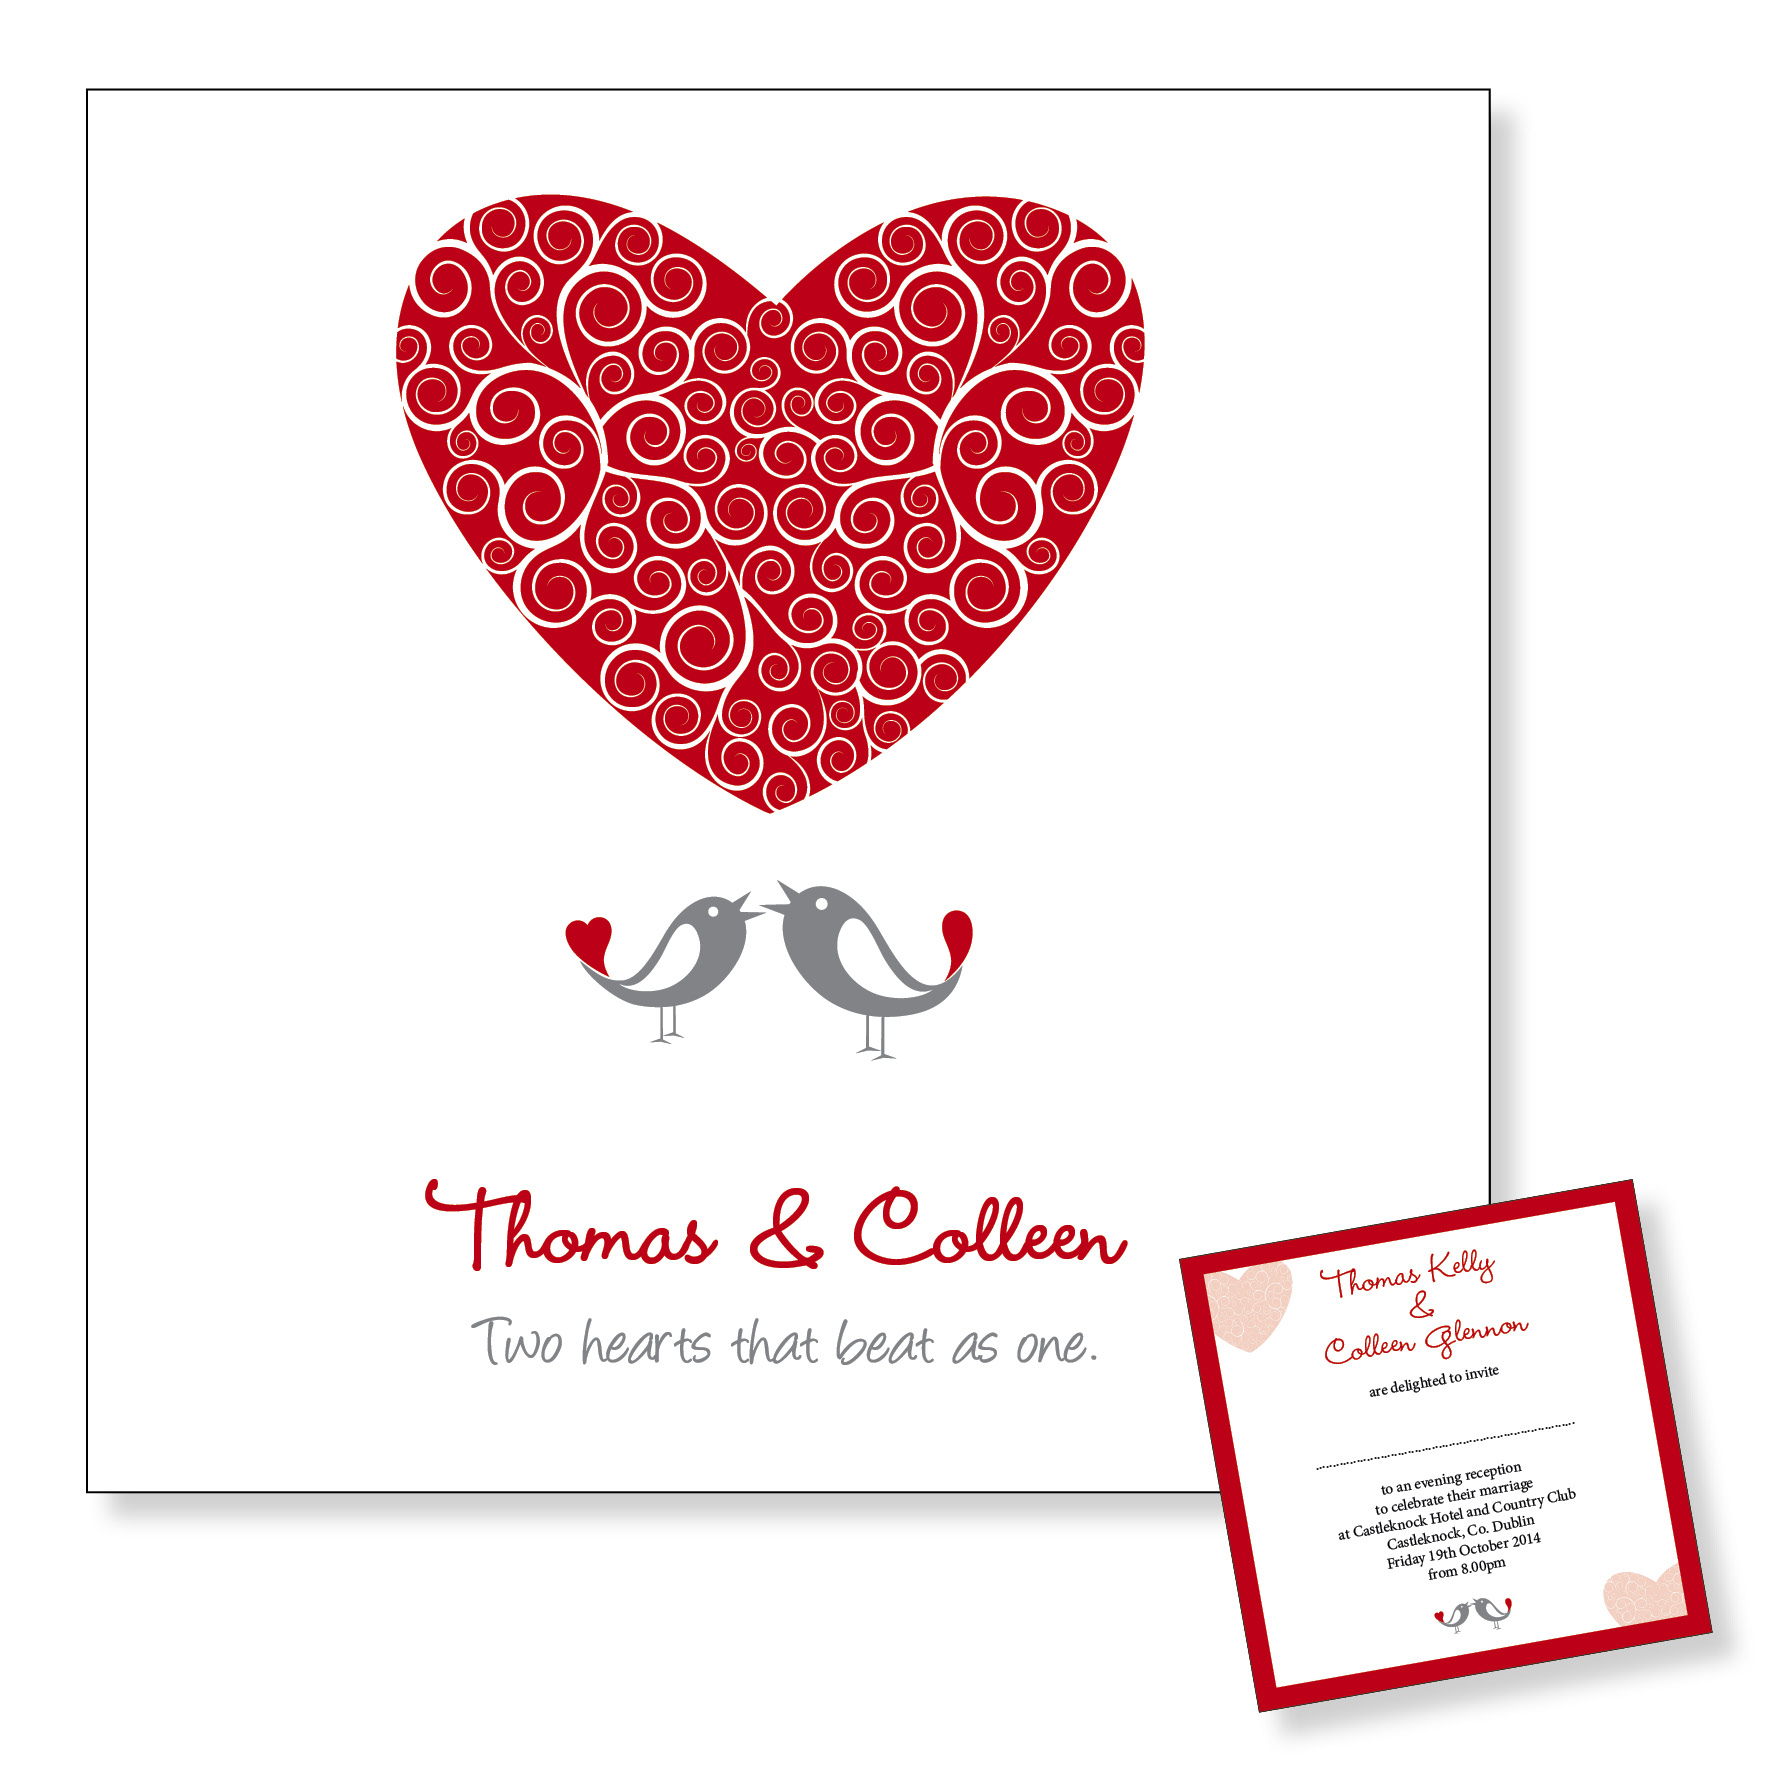 Evening wedding invitation - Love birds